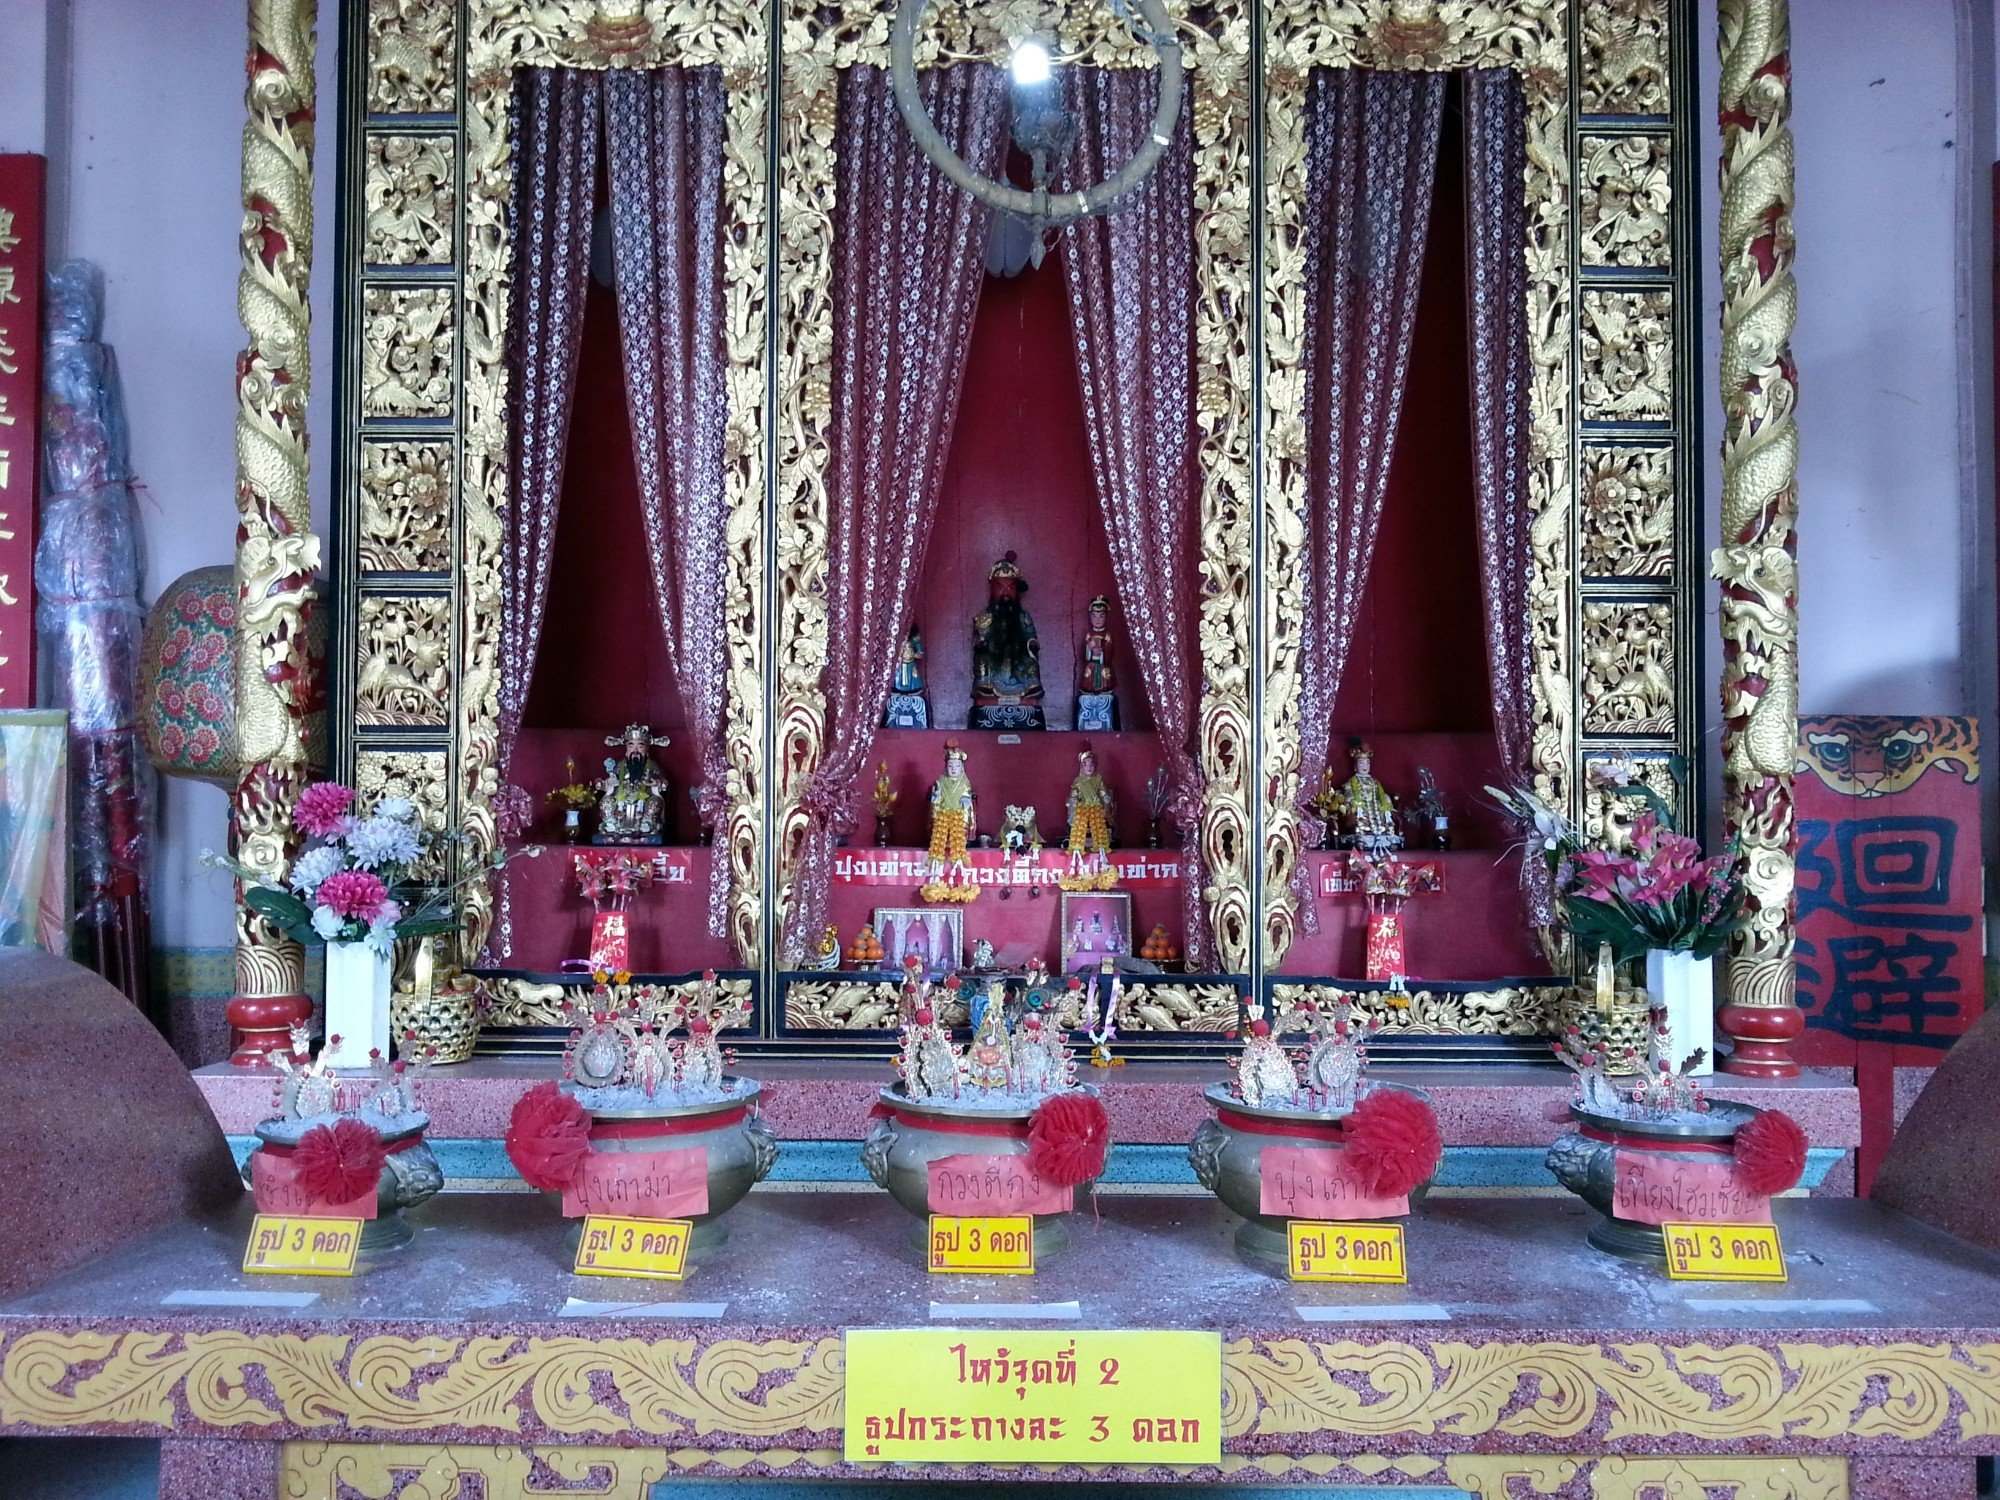 Inside Pung Thao Kong Shrine